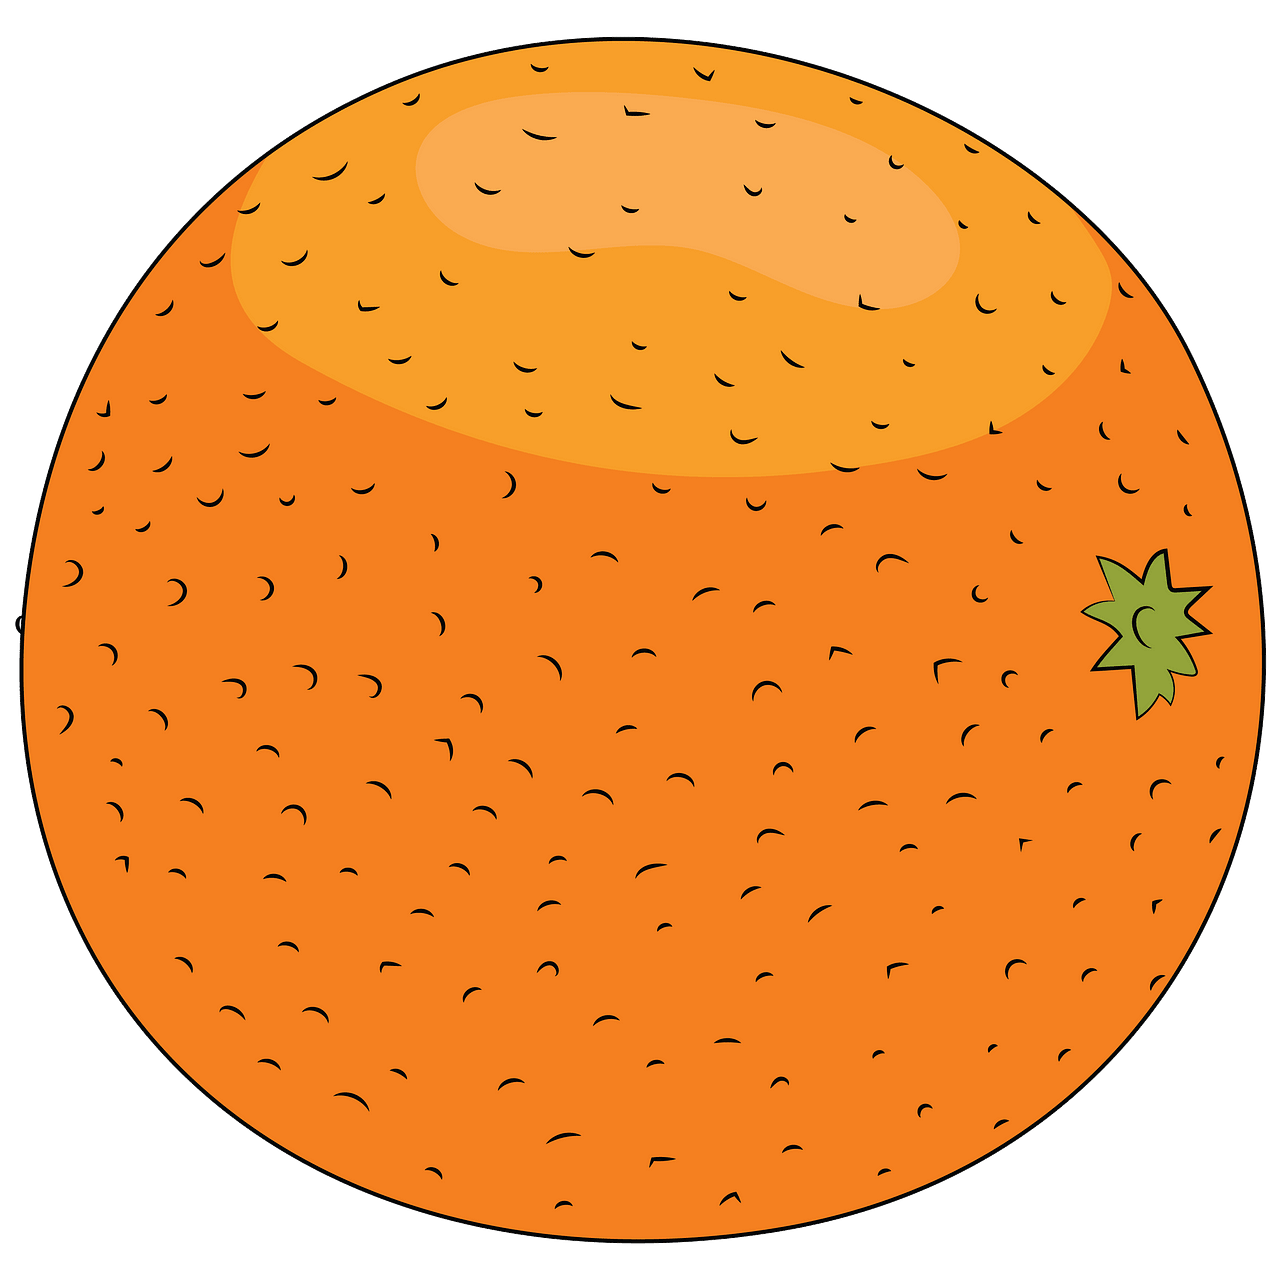 Orange clipart. Free download..